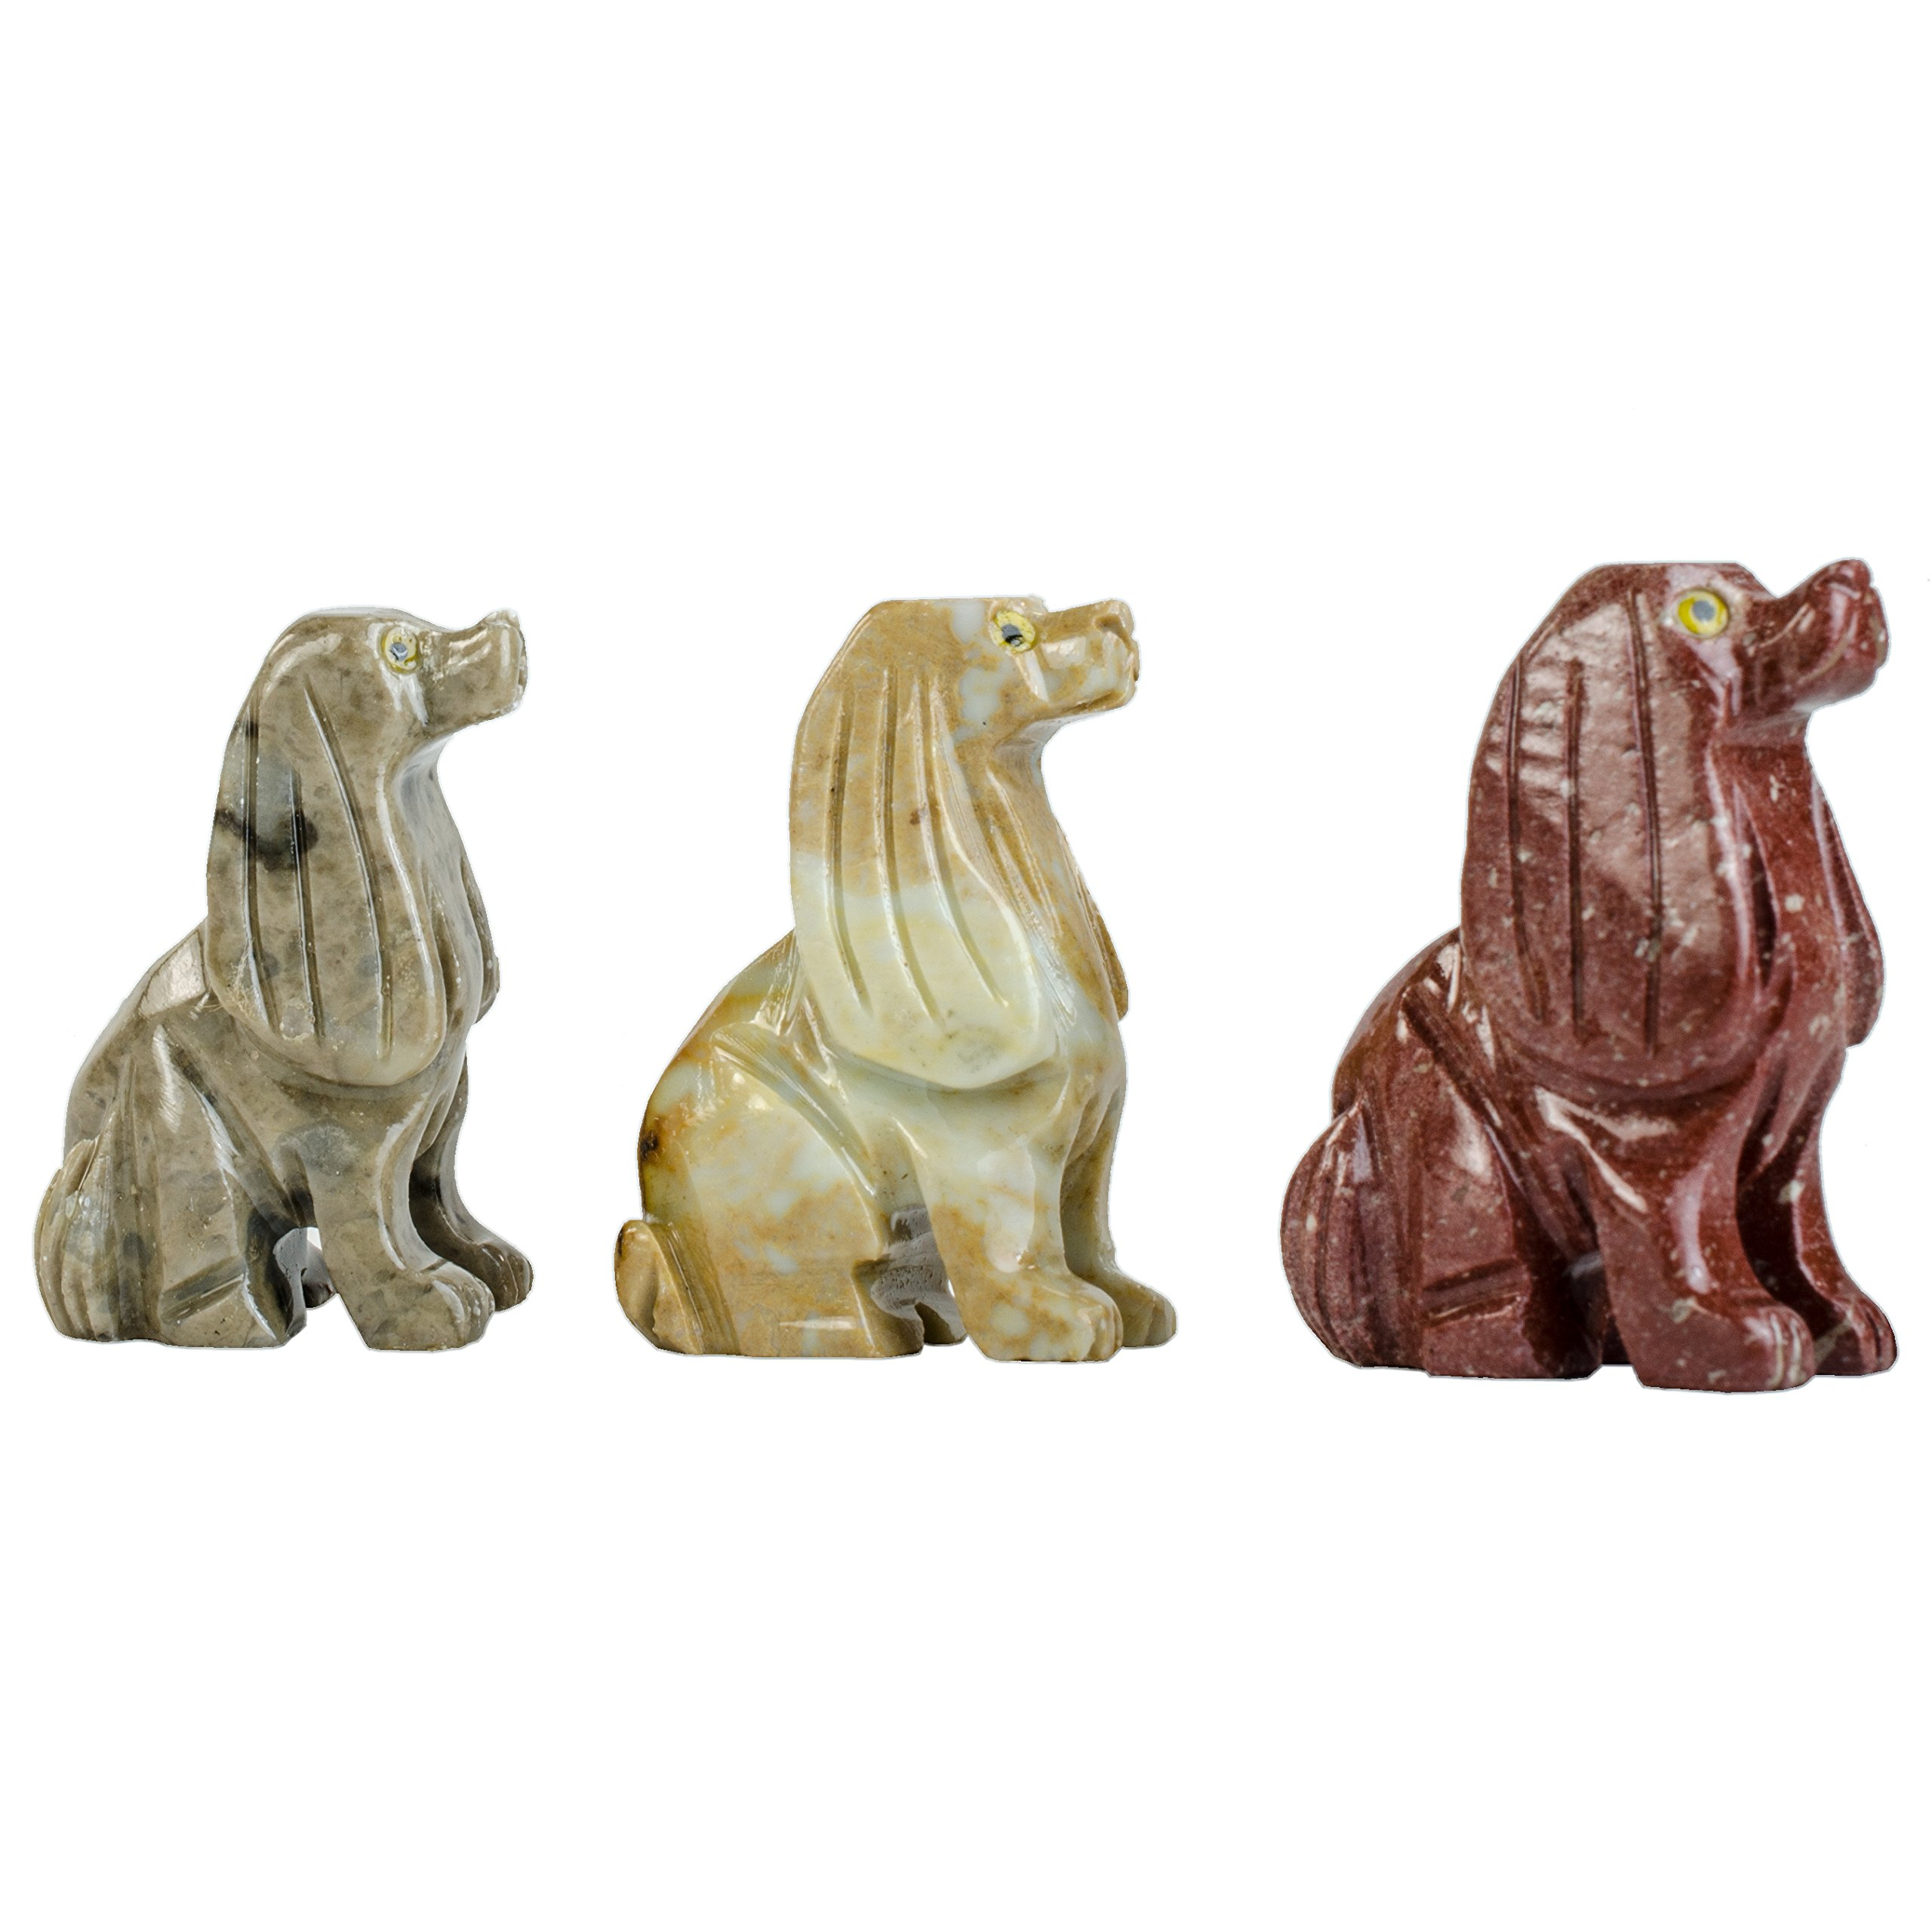 Digging Dolls : 30 pcs Artisan Dog Collectable Animal Figurine - Style 2 - Party Favors, Stocking Stuffers, Gifts, Collecting and More!